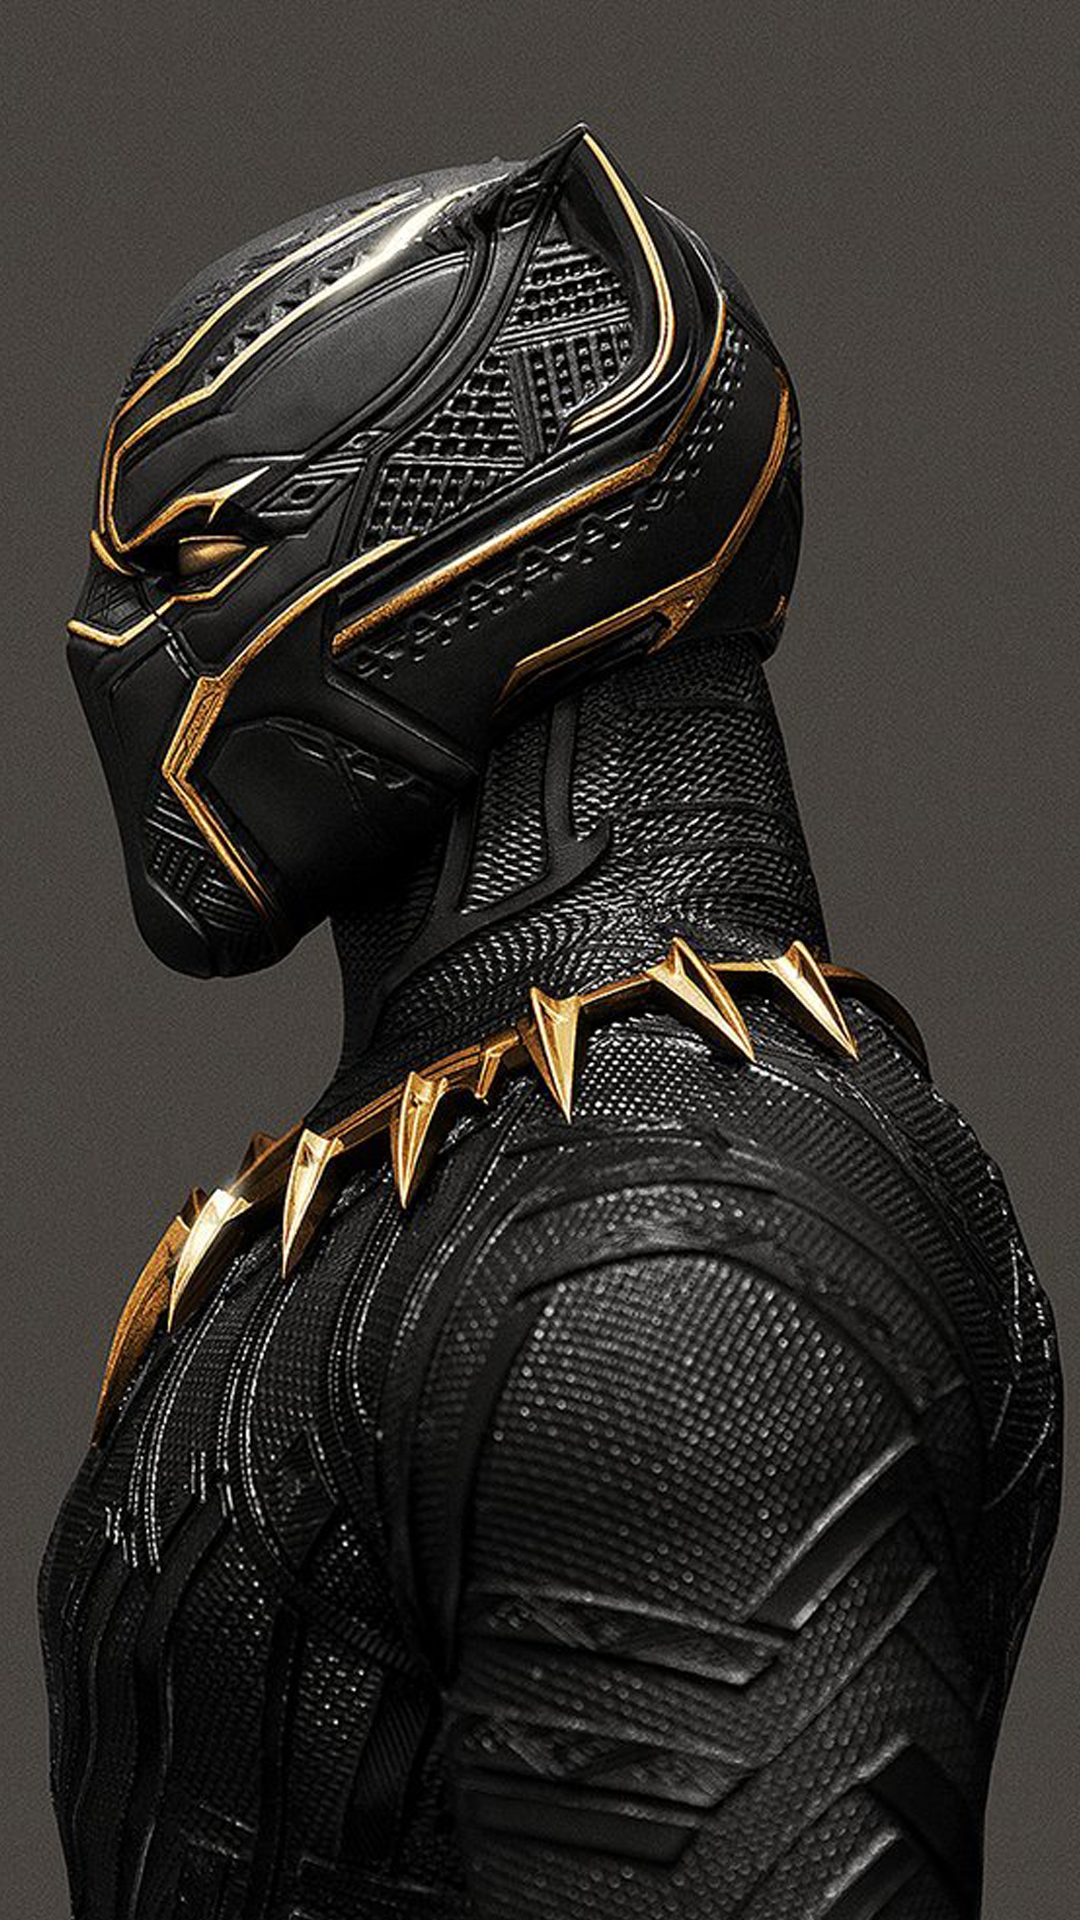 Black Panther Wallpapers For Free 1080x1920 Wallpaper Teahub Io